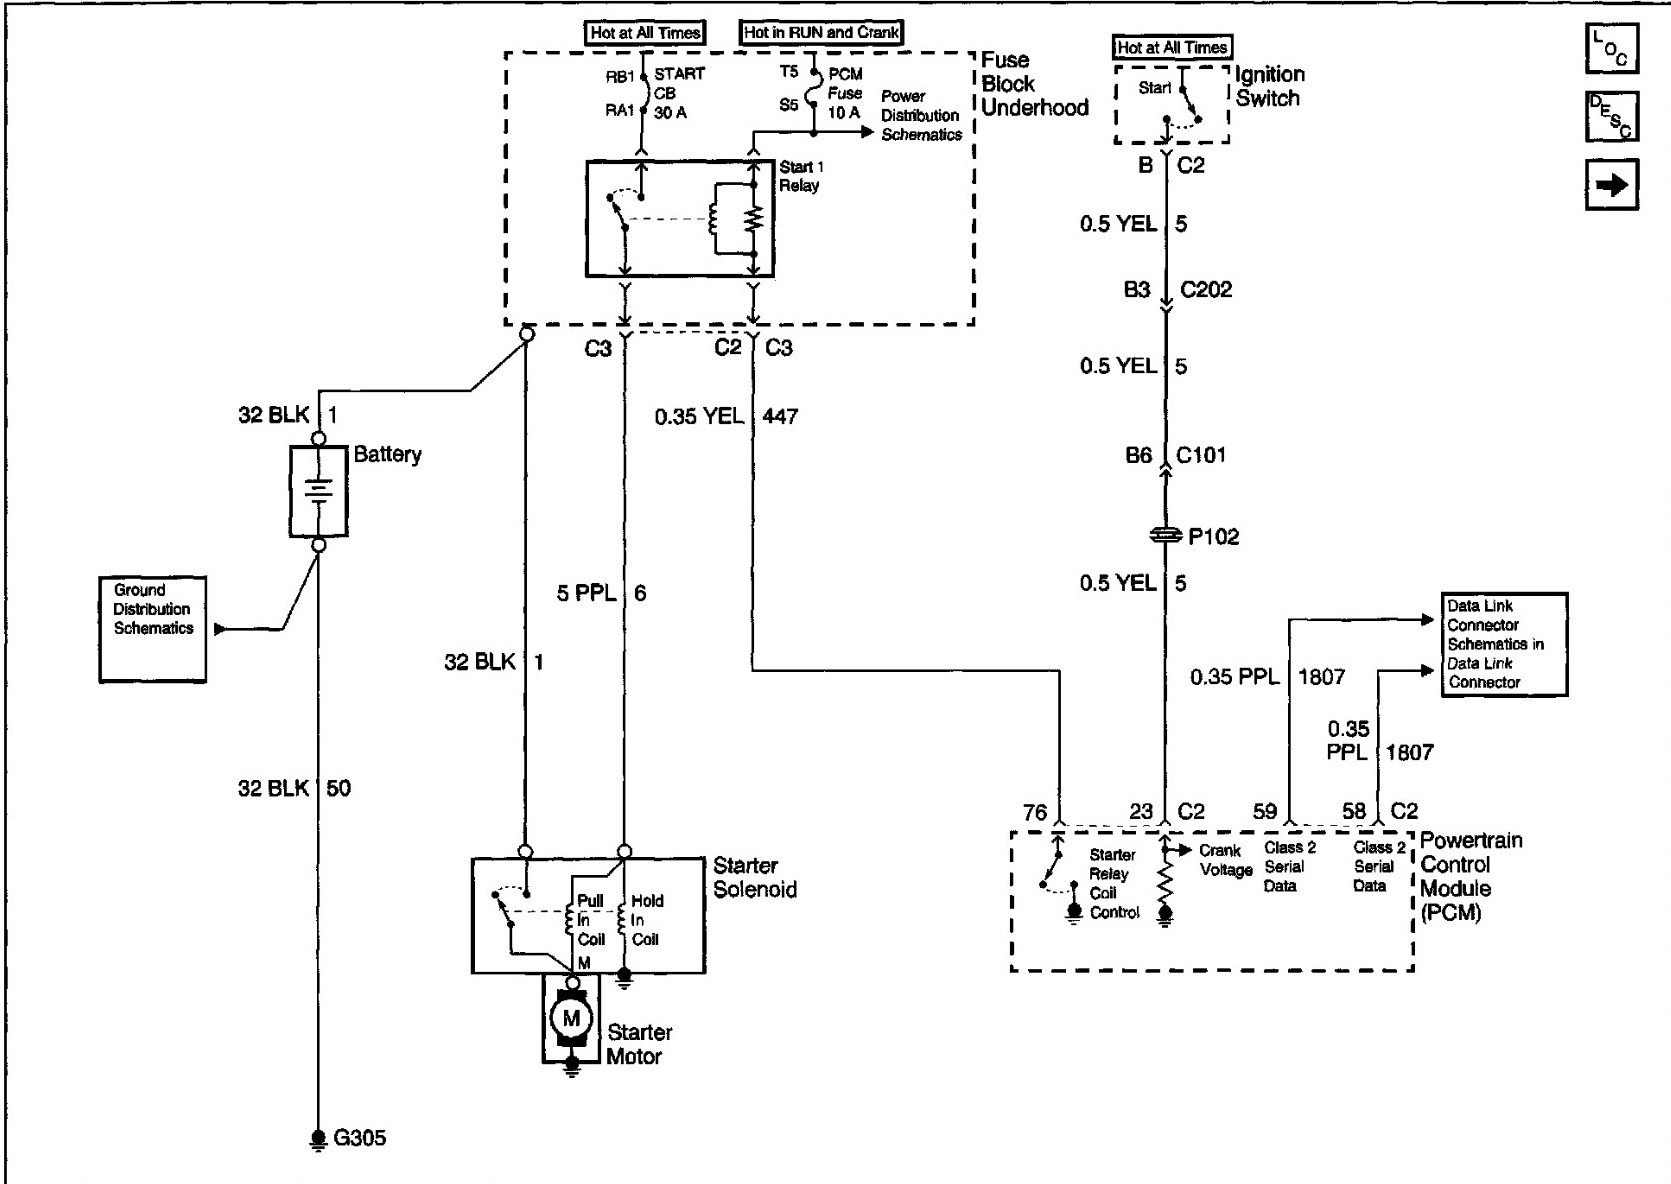 nissan 50 forklift wiring diagram nissan free engine image for user manual